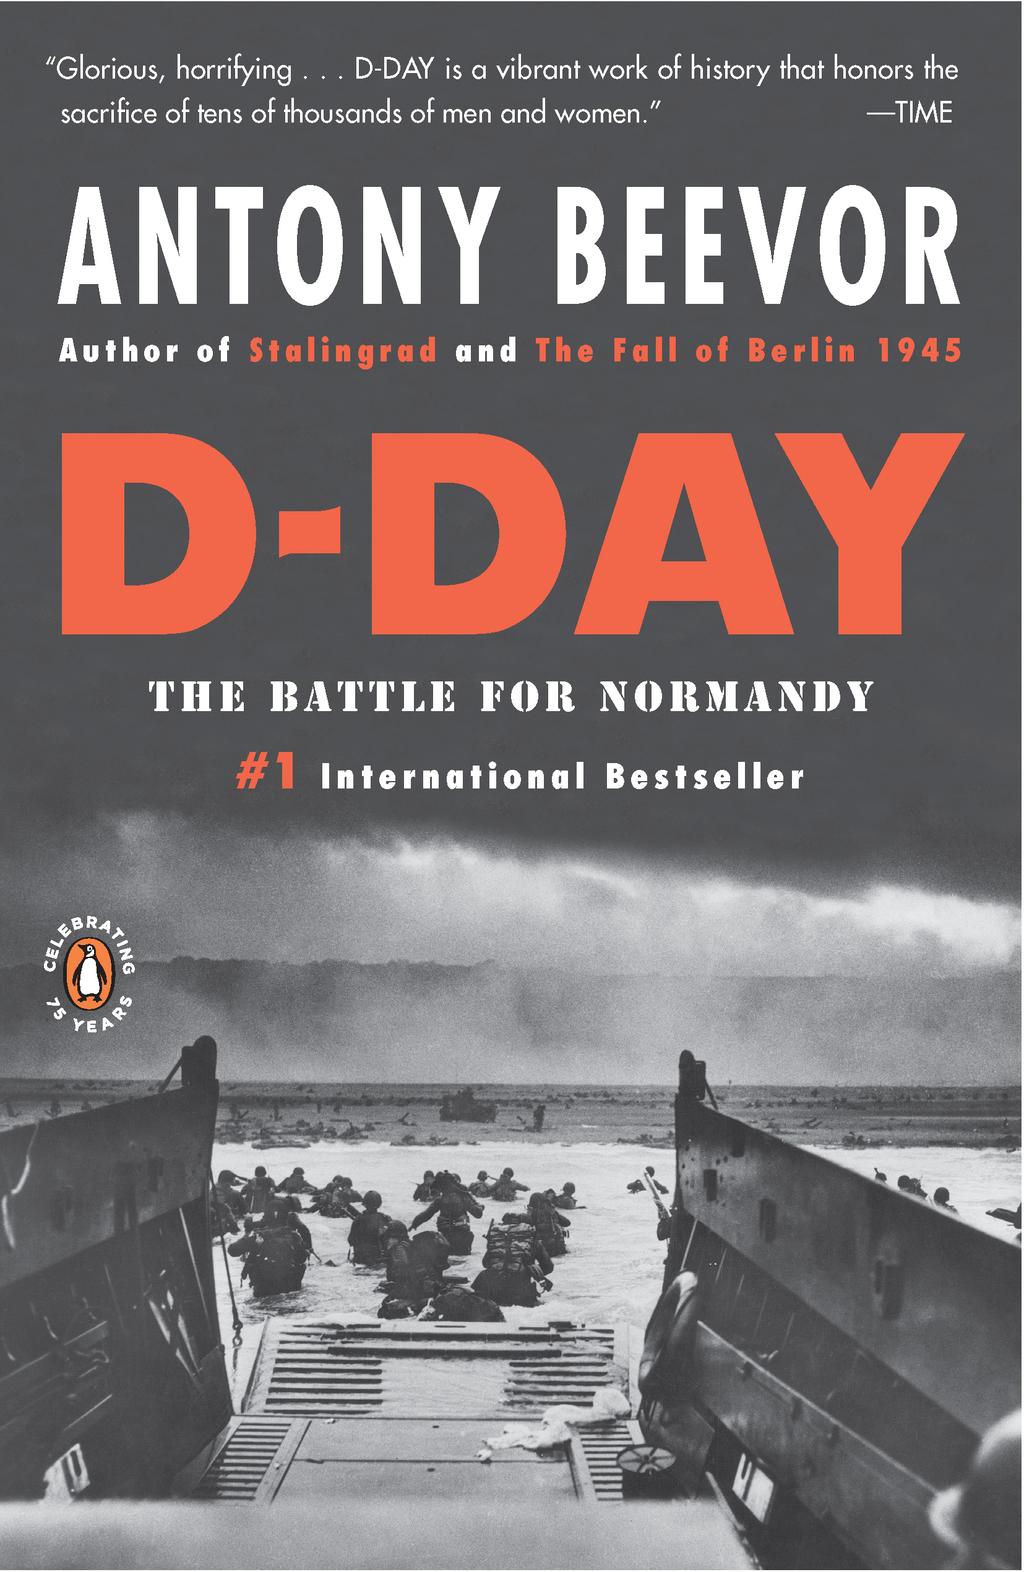 D-Day By: Antony Beevor